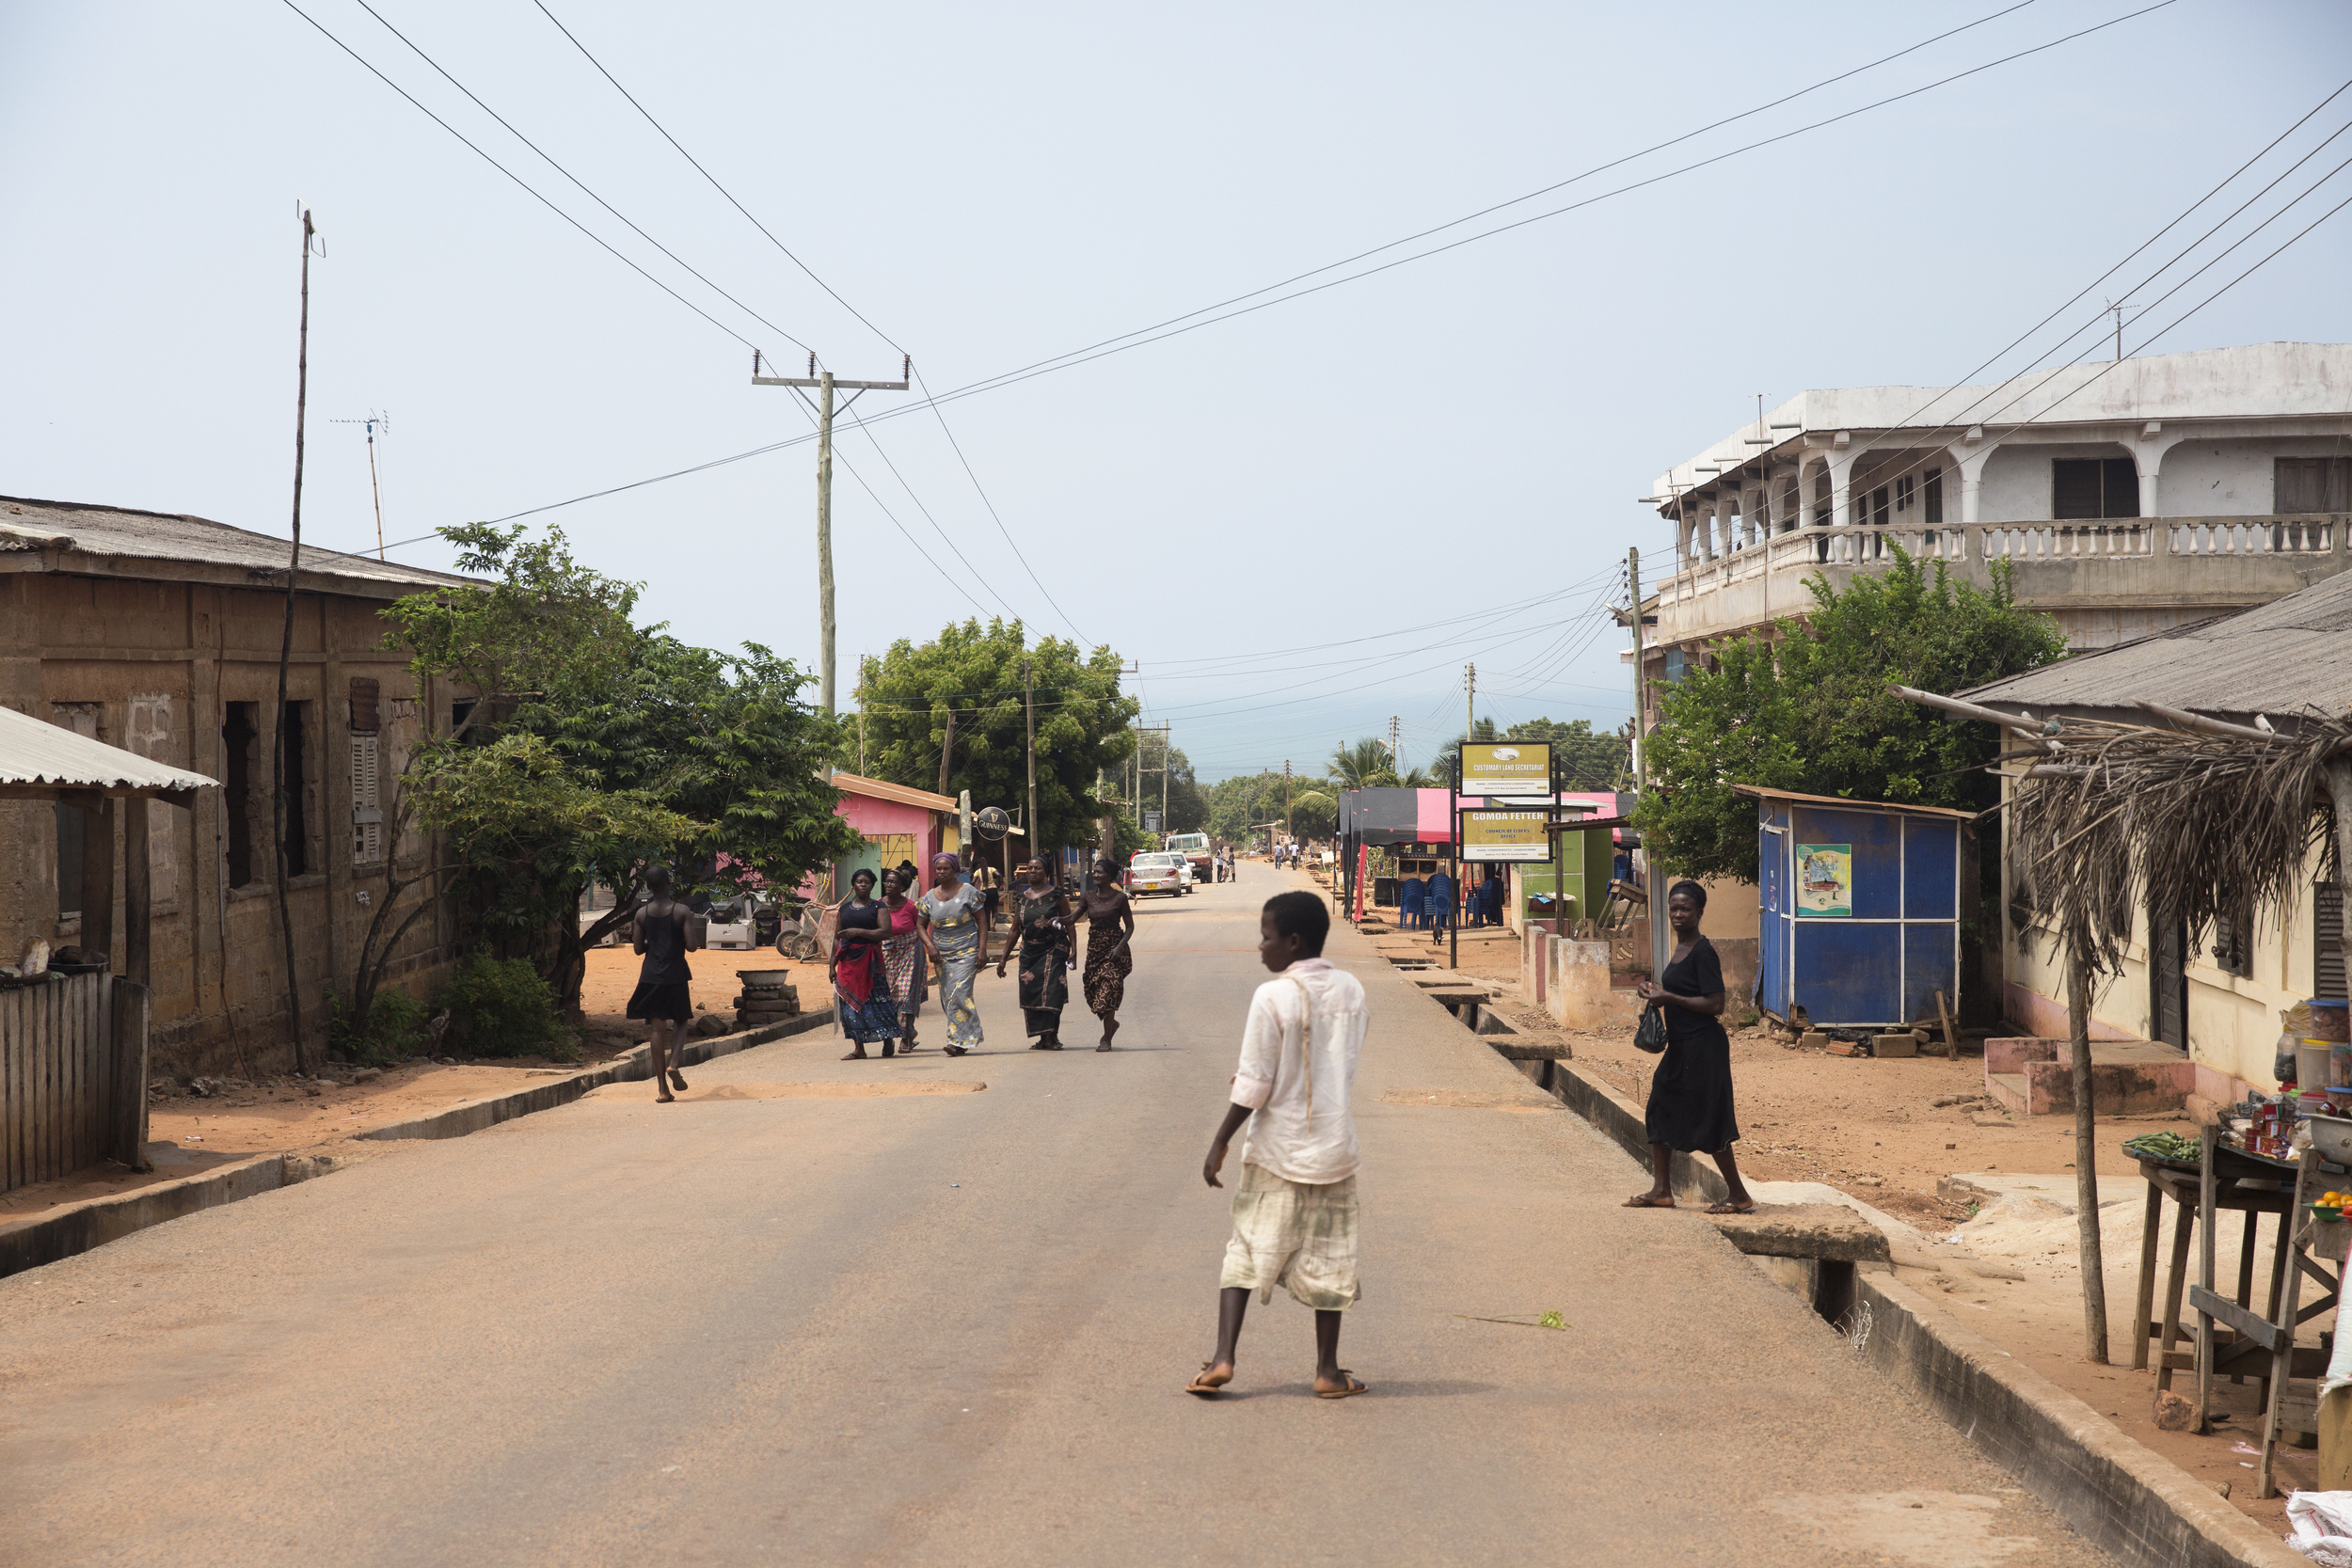 A street view of the village that we ended up in. The women in black and red are on their way to attend a funeral.